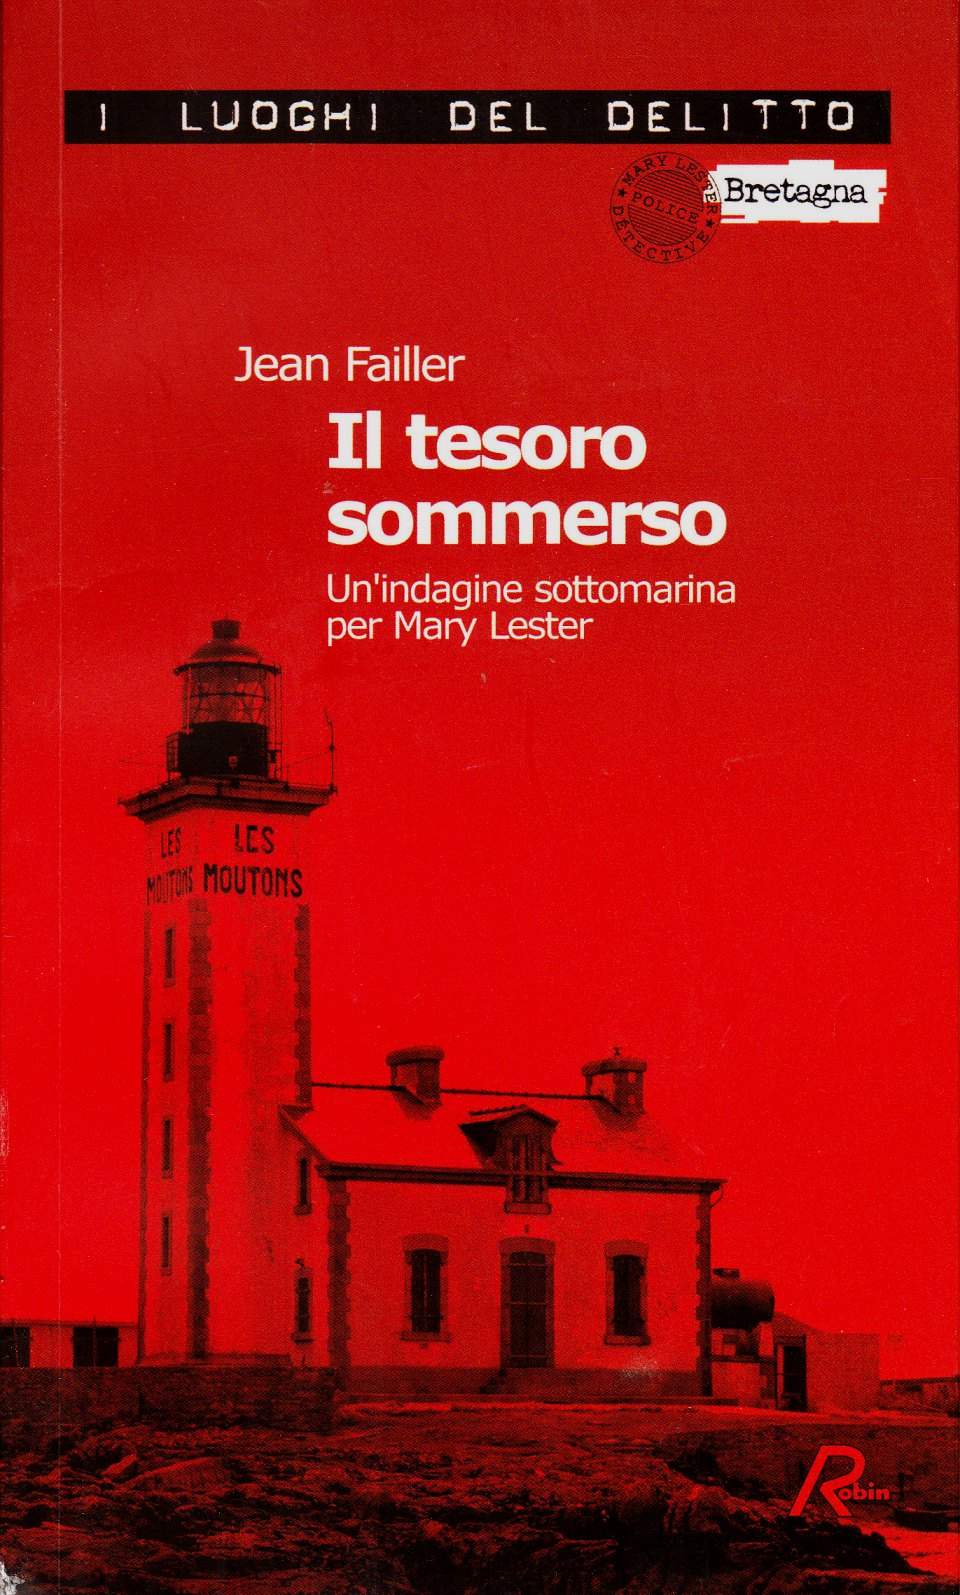 Il tesoro sommerso